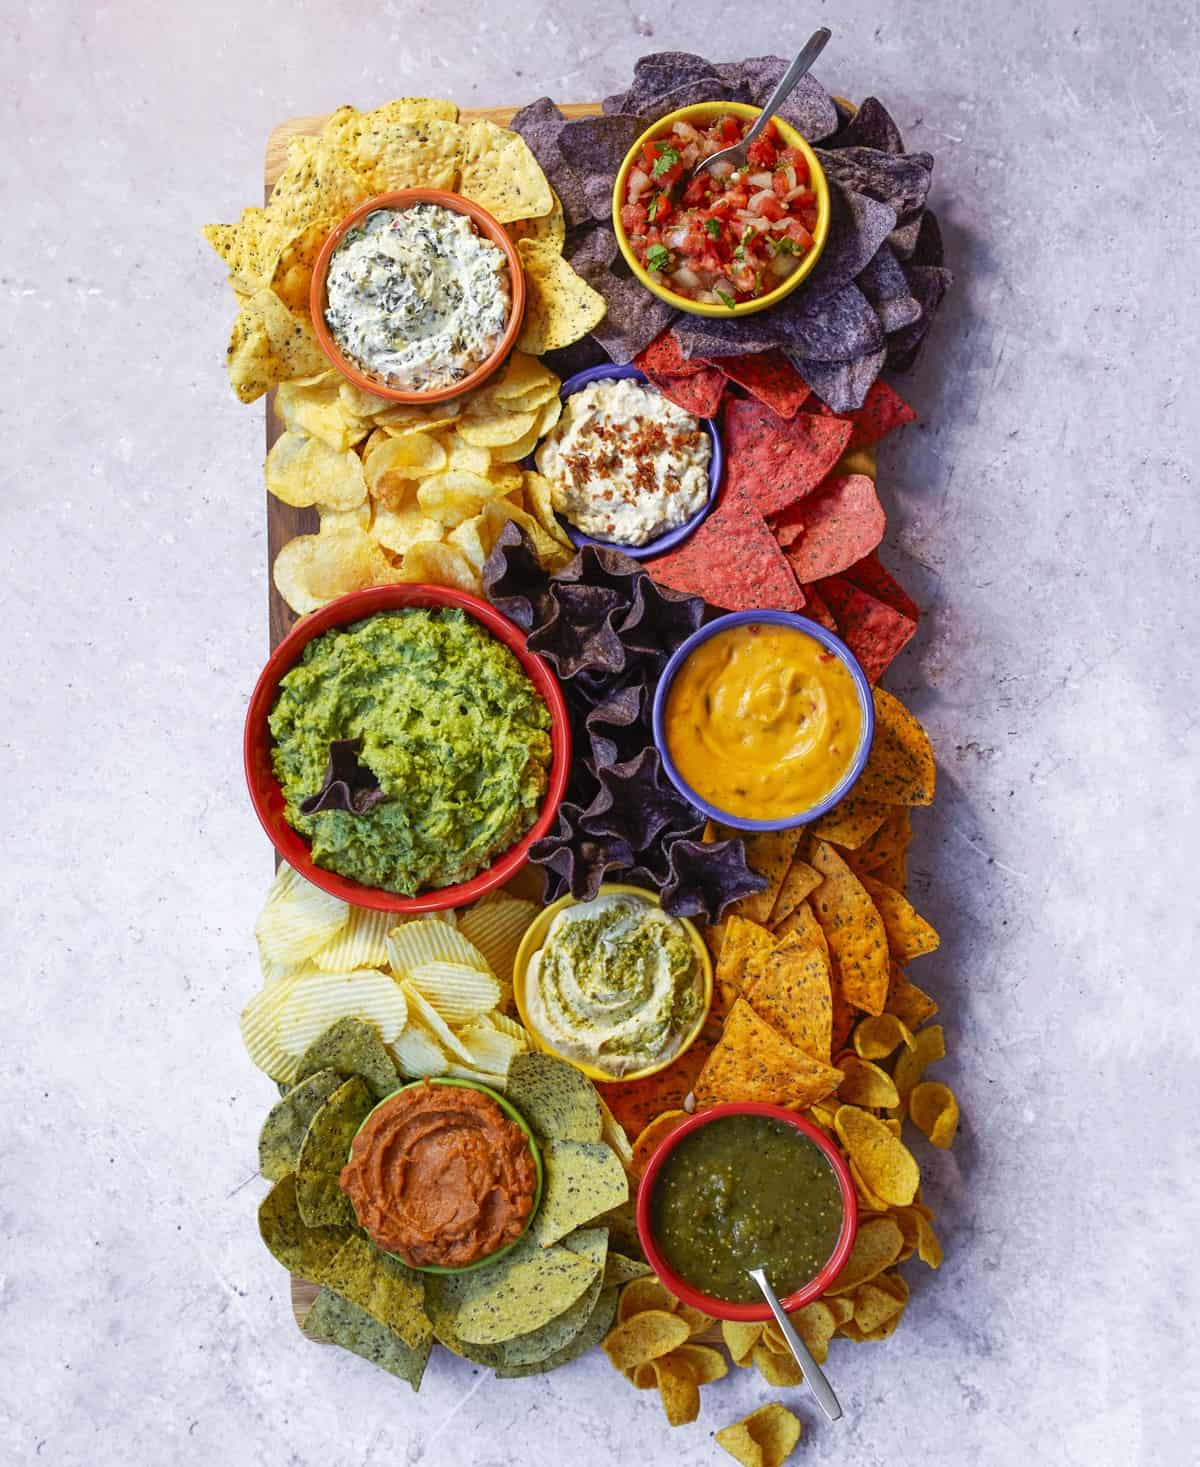 Chips and Dips Board by The BakerMama